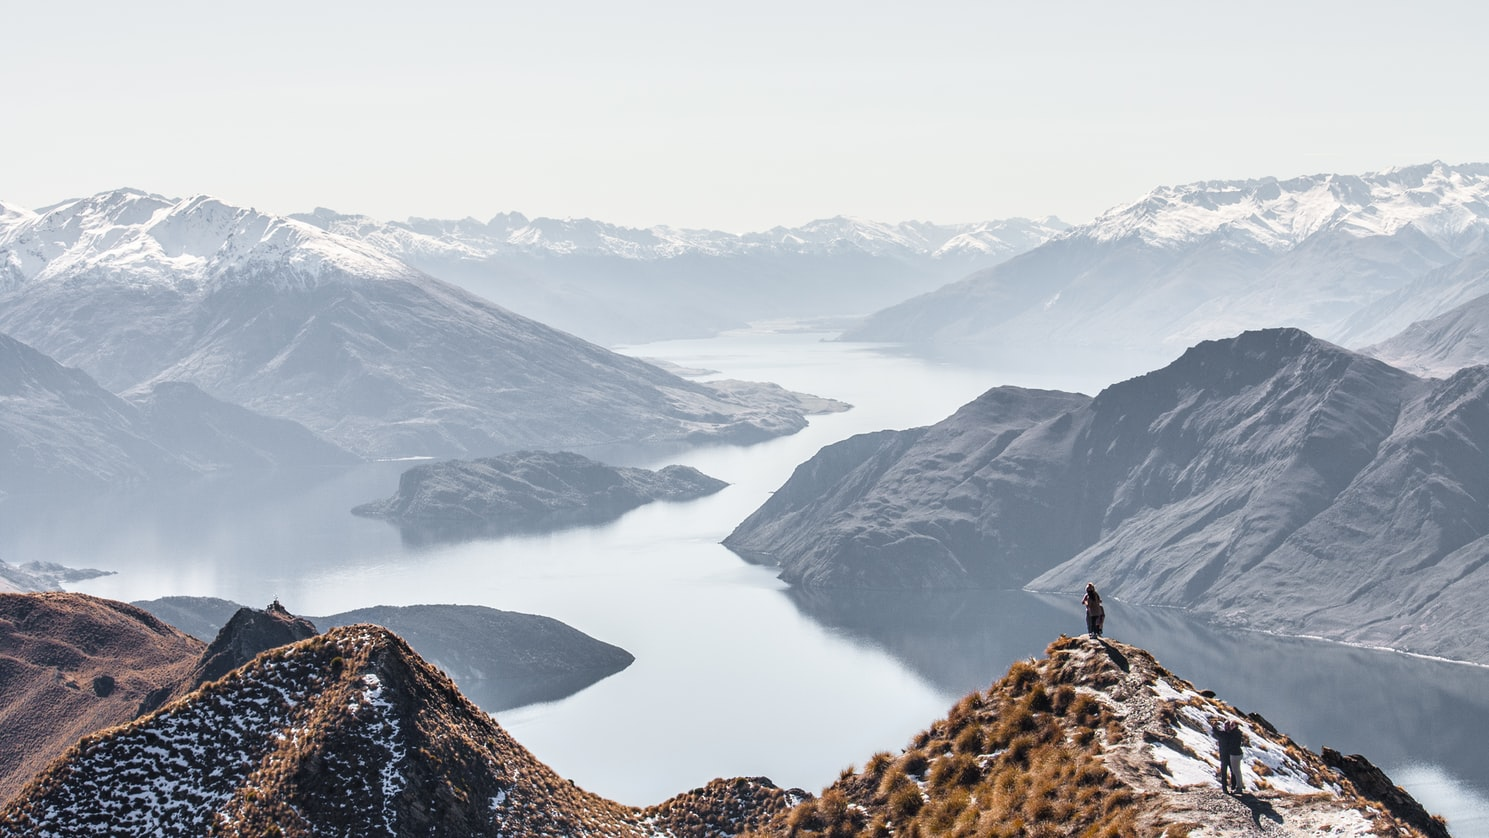 snowy capped mountains and deep fjords of New Zealand.  A person on top of a mountain in the foreground looks down on the fjord which is filled with mist.